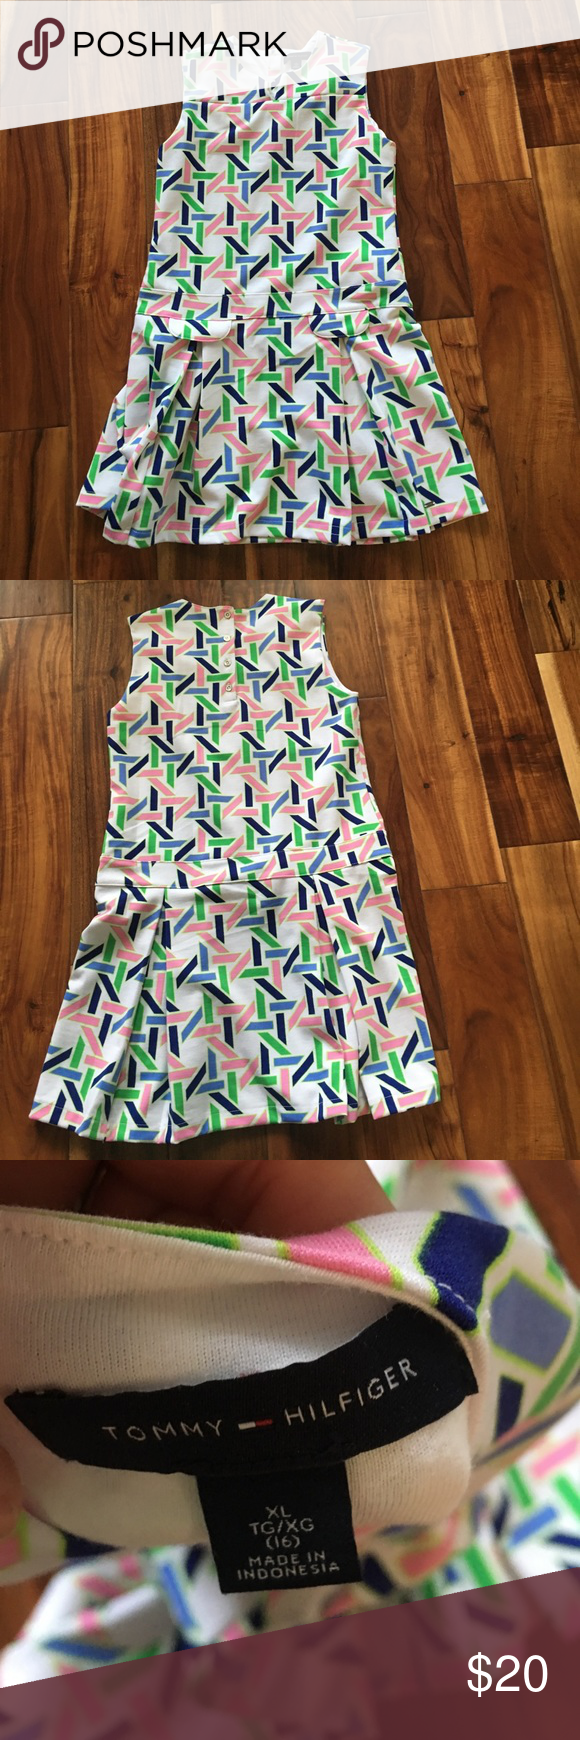 Tommy Hilfiger dress Great condition. No tears or stains Tommy Hilfiger Dresses